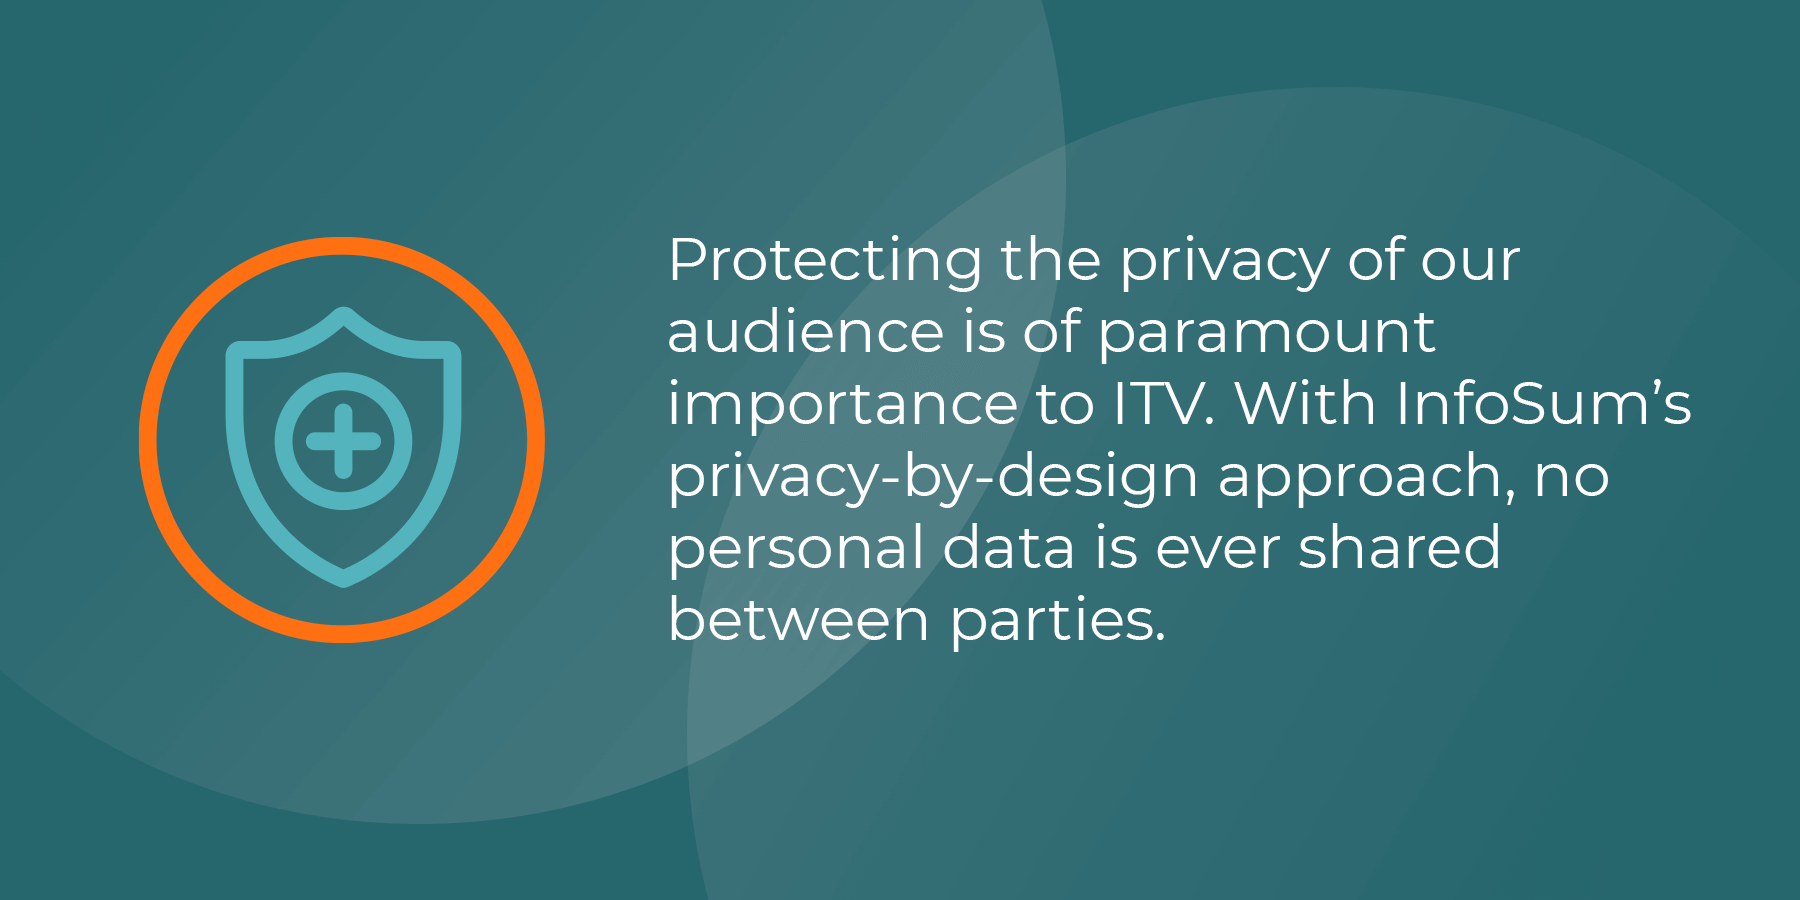 Protecting the privacy of our audience is of paramount importance to ITV. With InfoSum's privacy-by-design approach, no personal data is ever shared between parties.